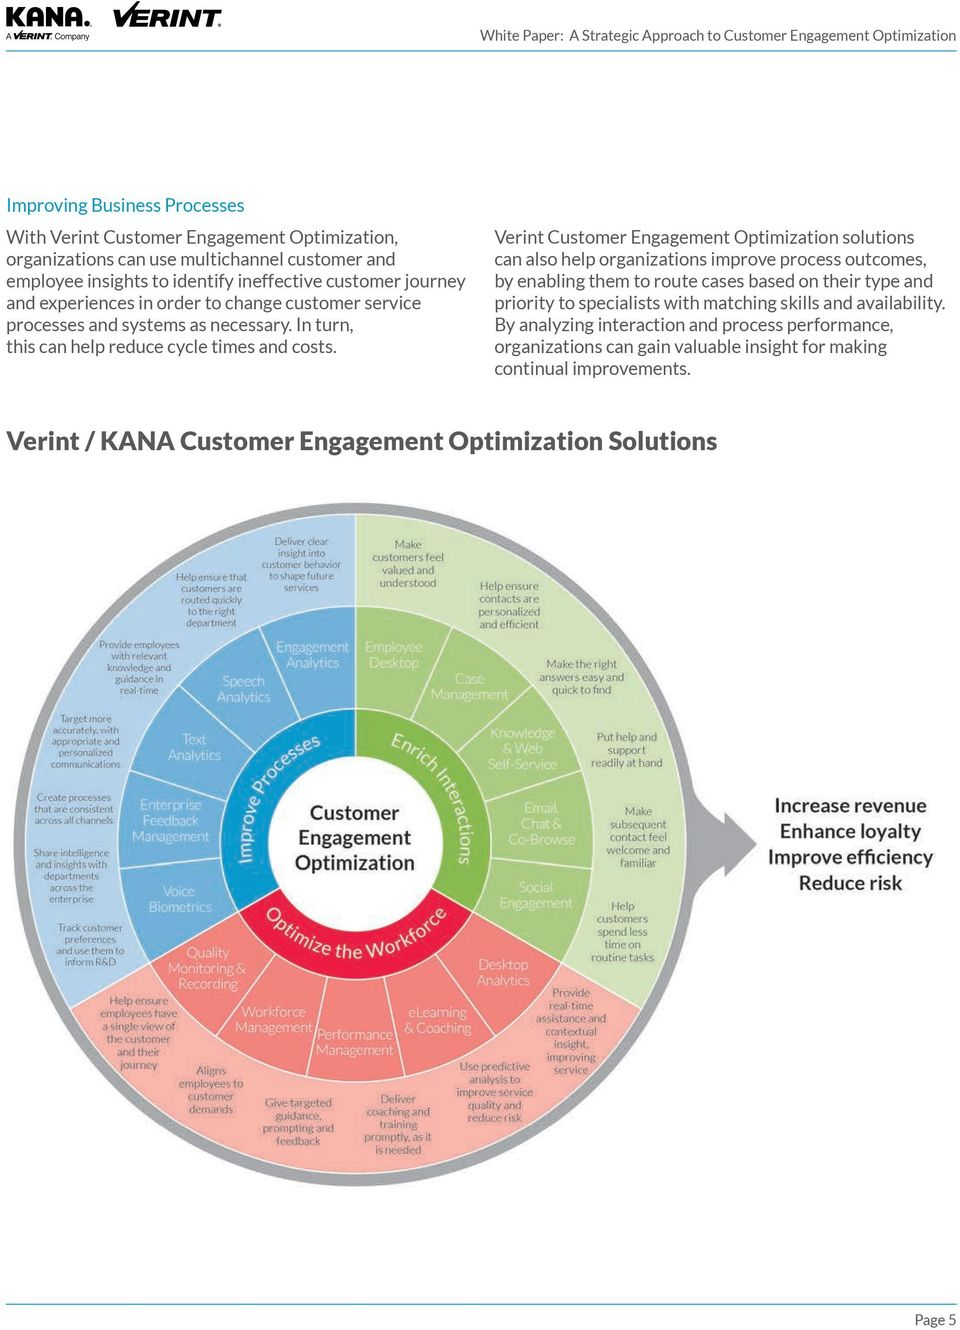 Verint Customer Engagement Optimization solutions can also help organizations improve process outcomes, by enabling them to route cases based on their type and priority to specialists